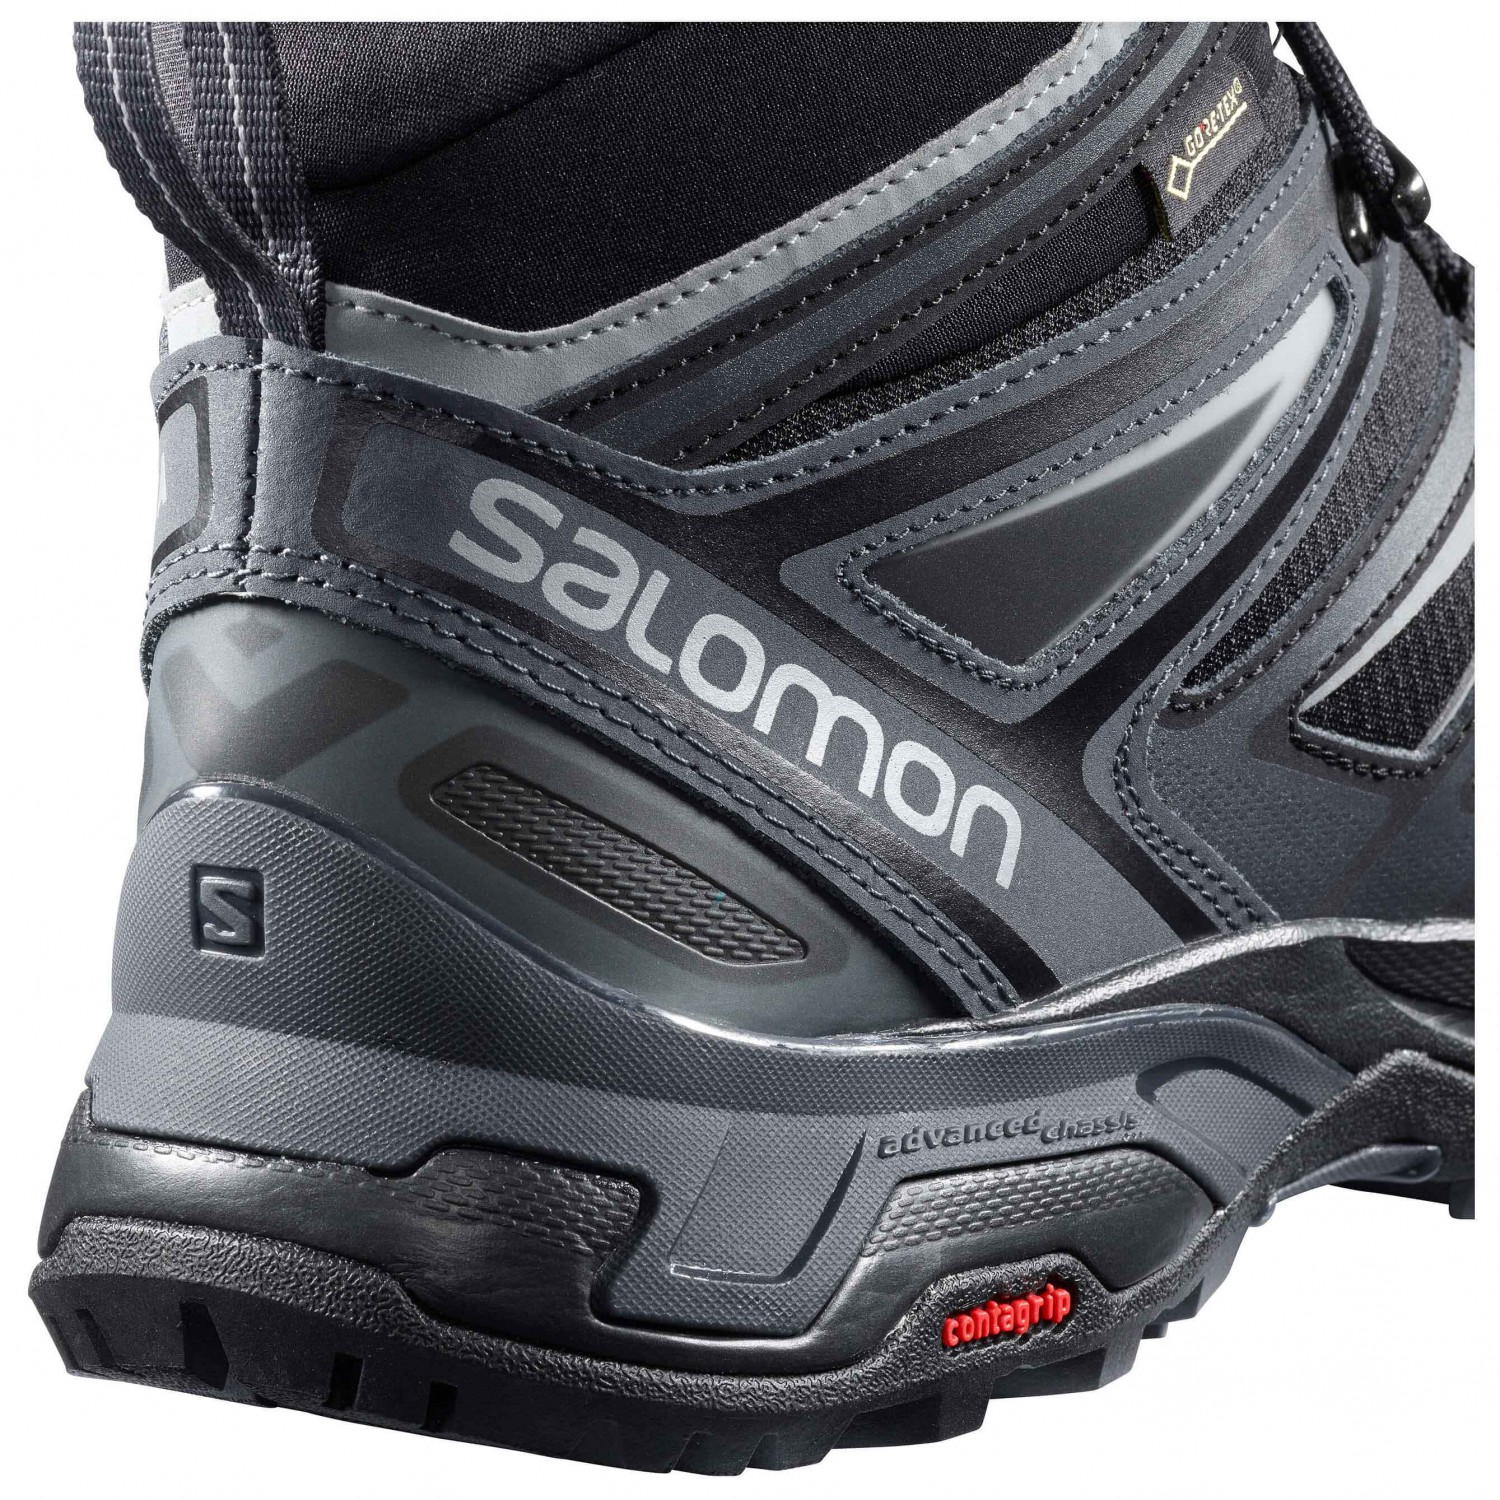 Salomon X Ultra 3 Mid GTX Wanderschuhe Castor Gray Black Green Sulphur | 7 (UK)